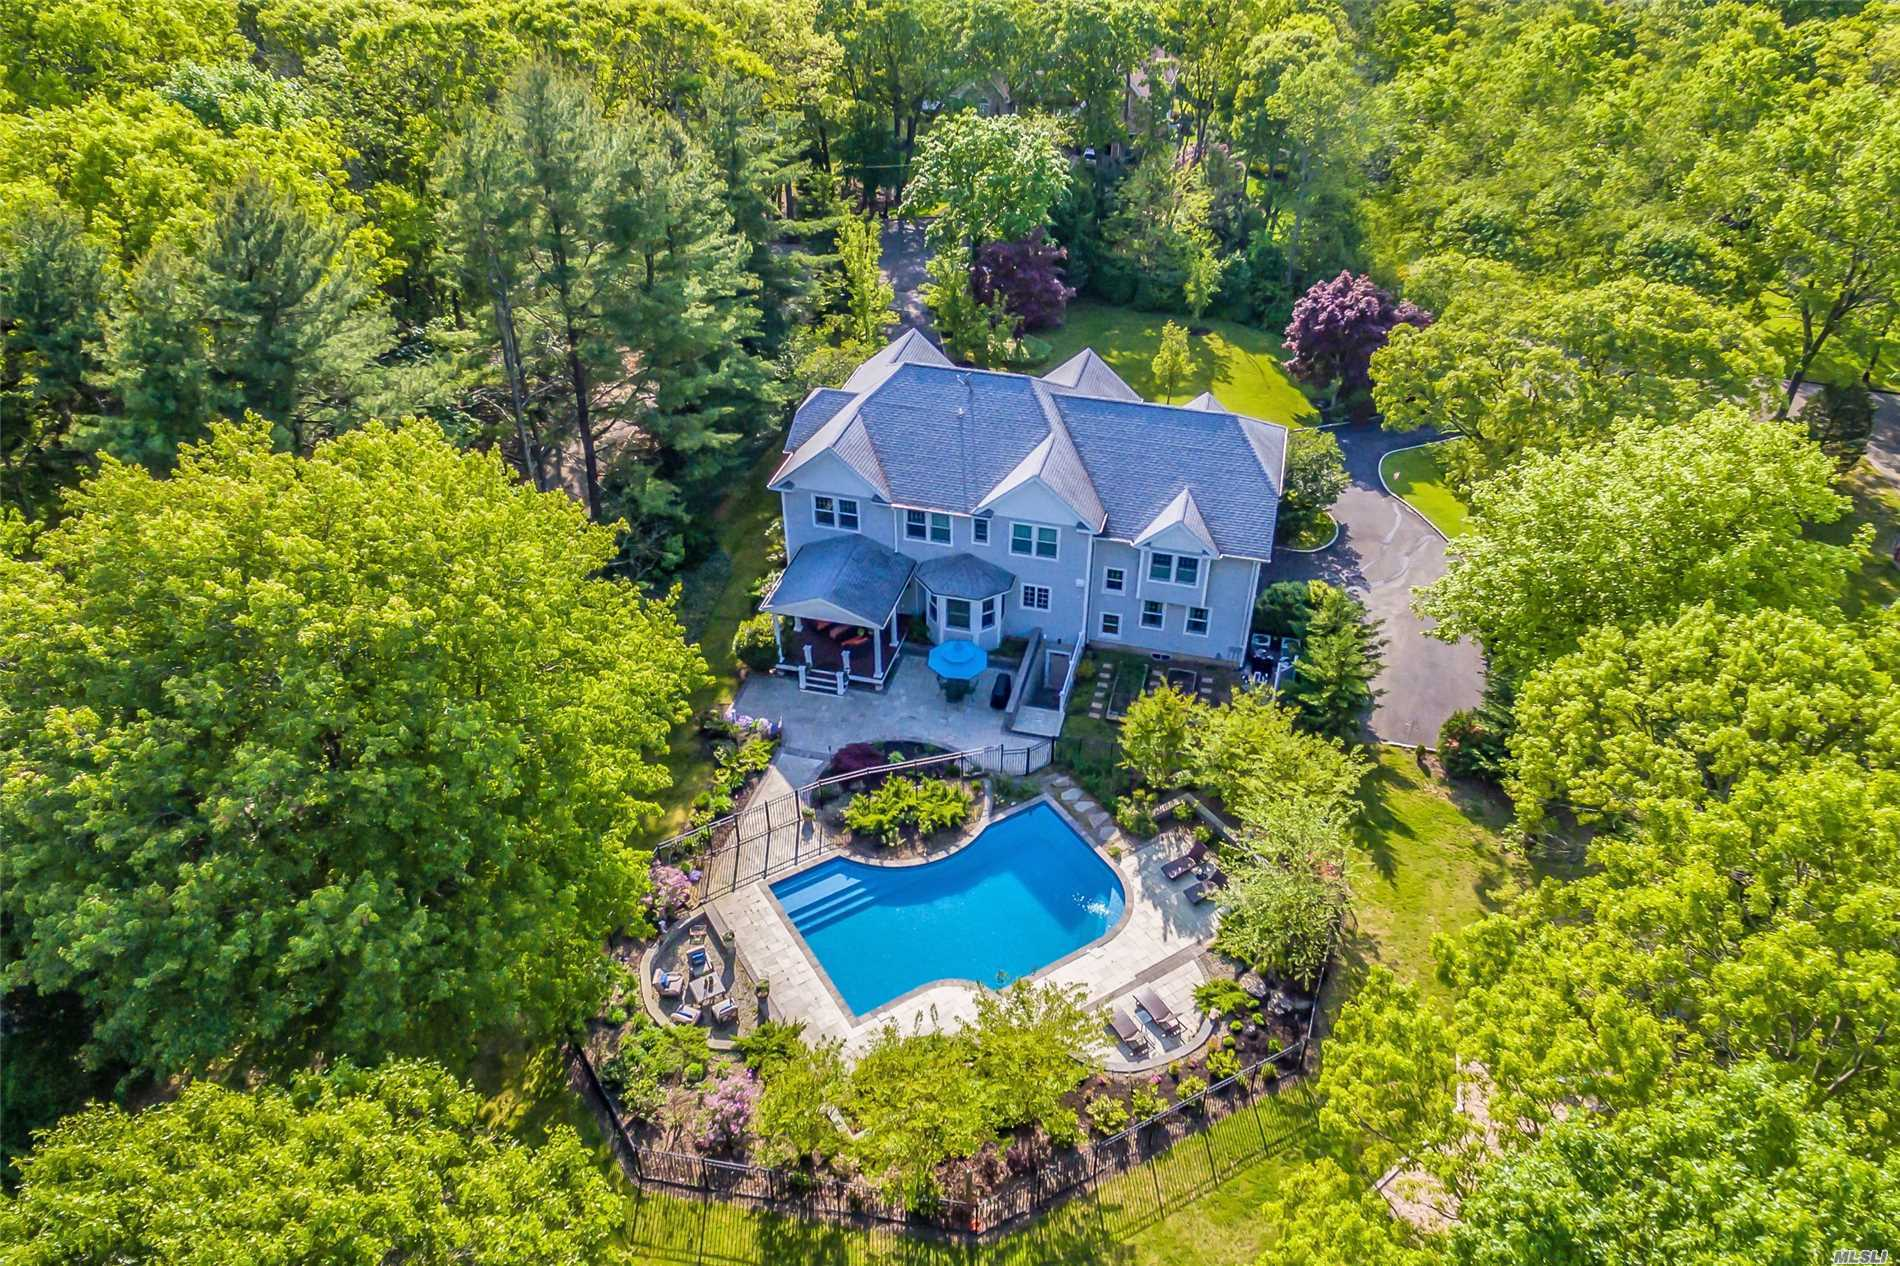 35 Breezy Hill Dr - Northport, New York